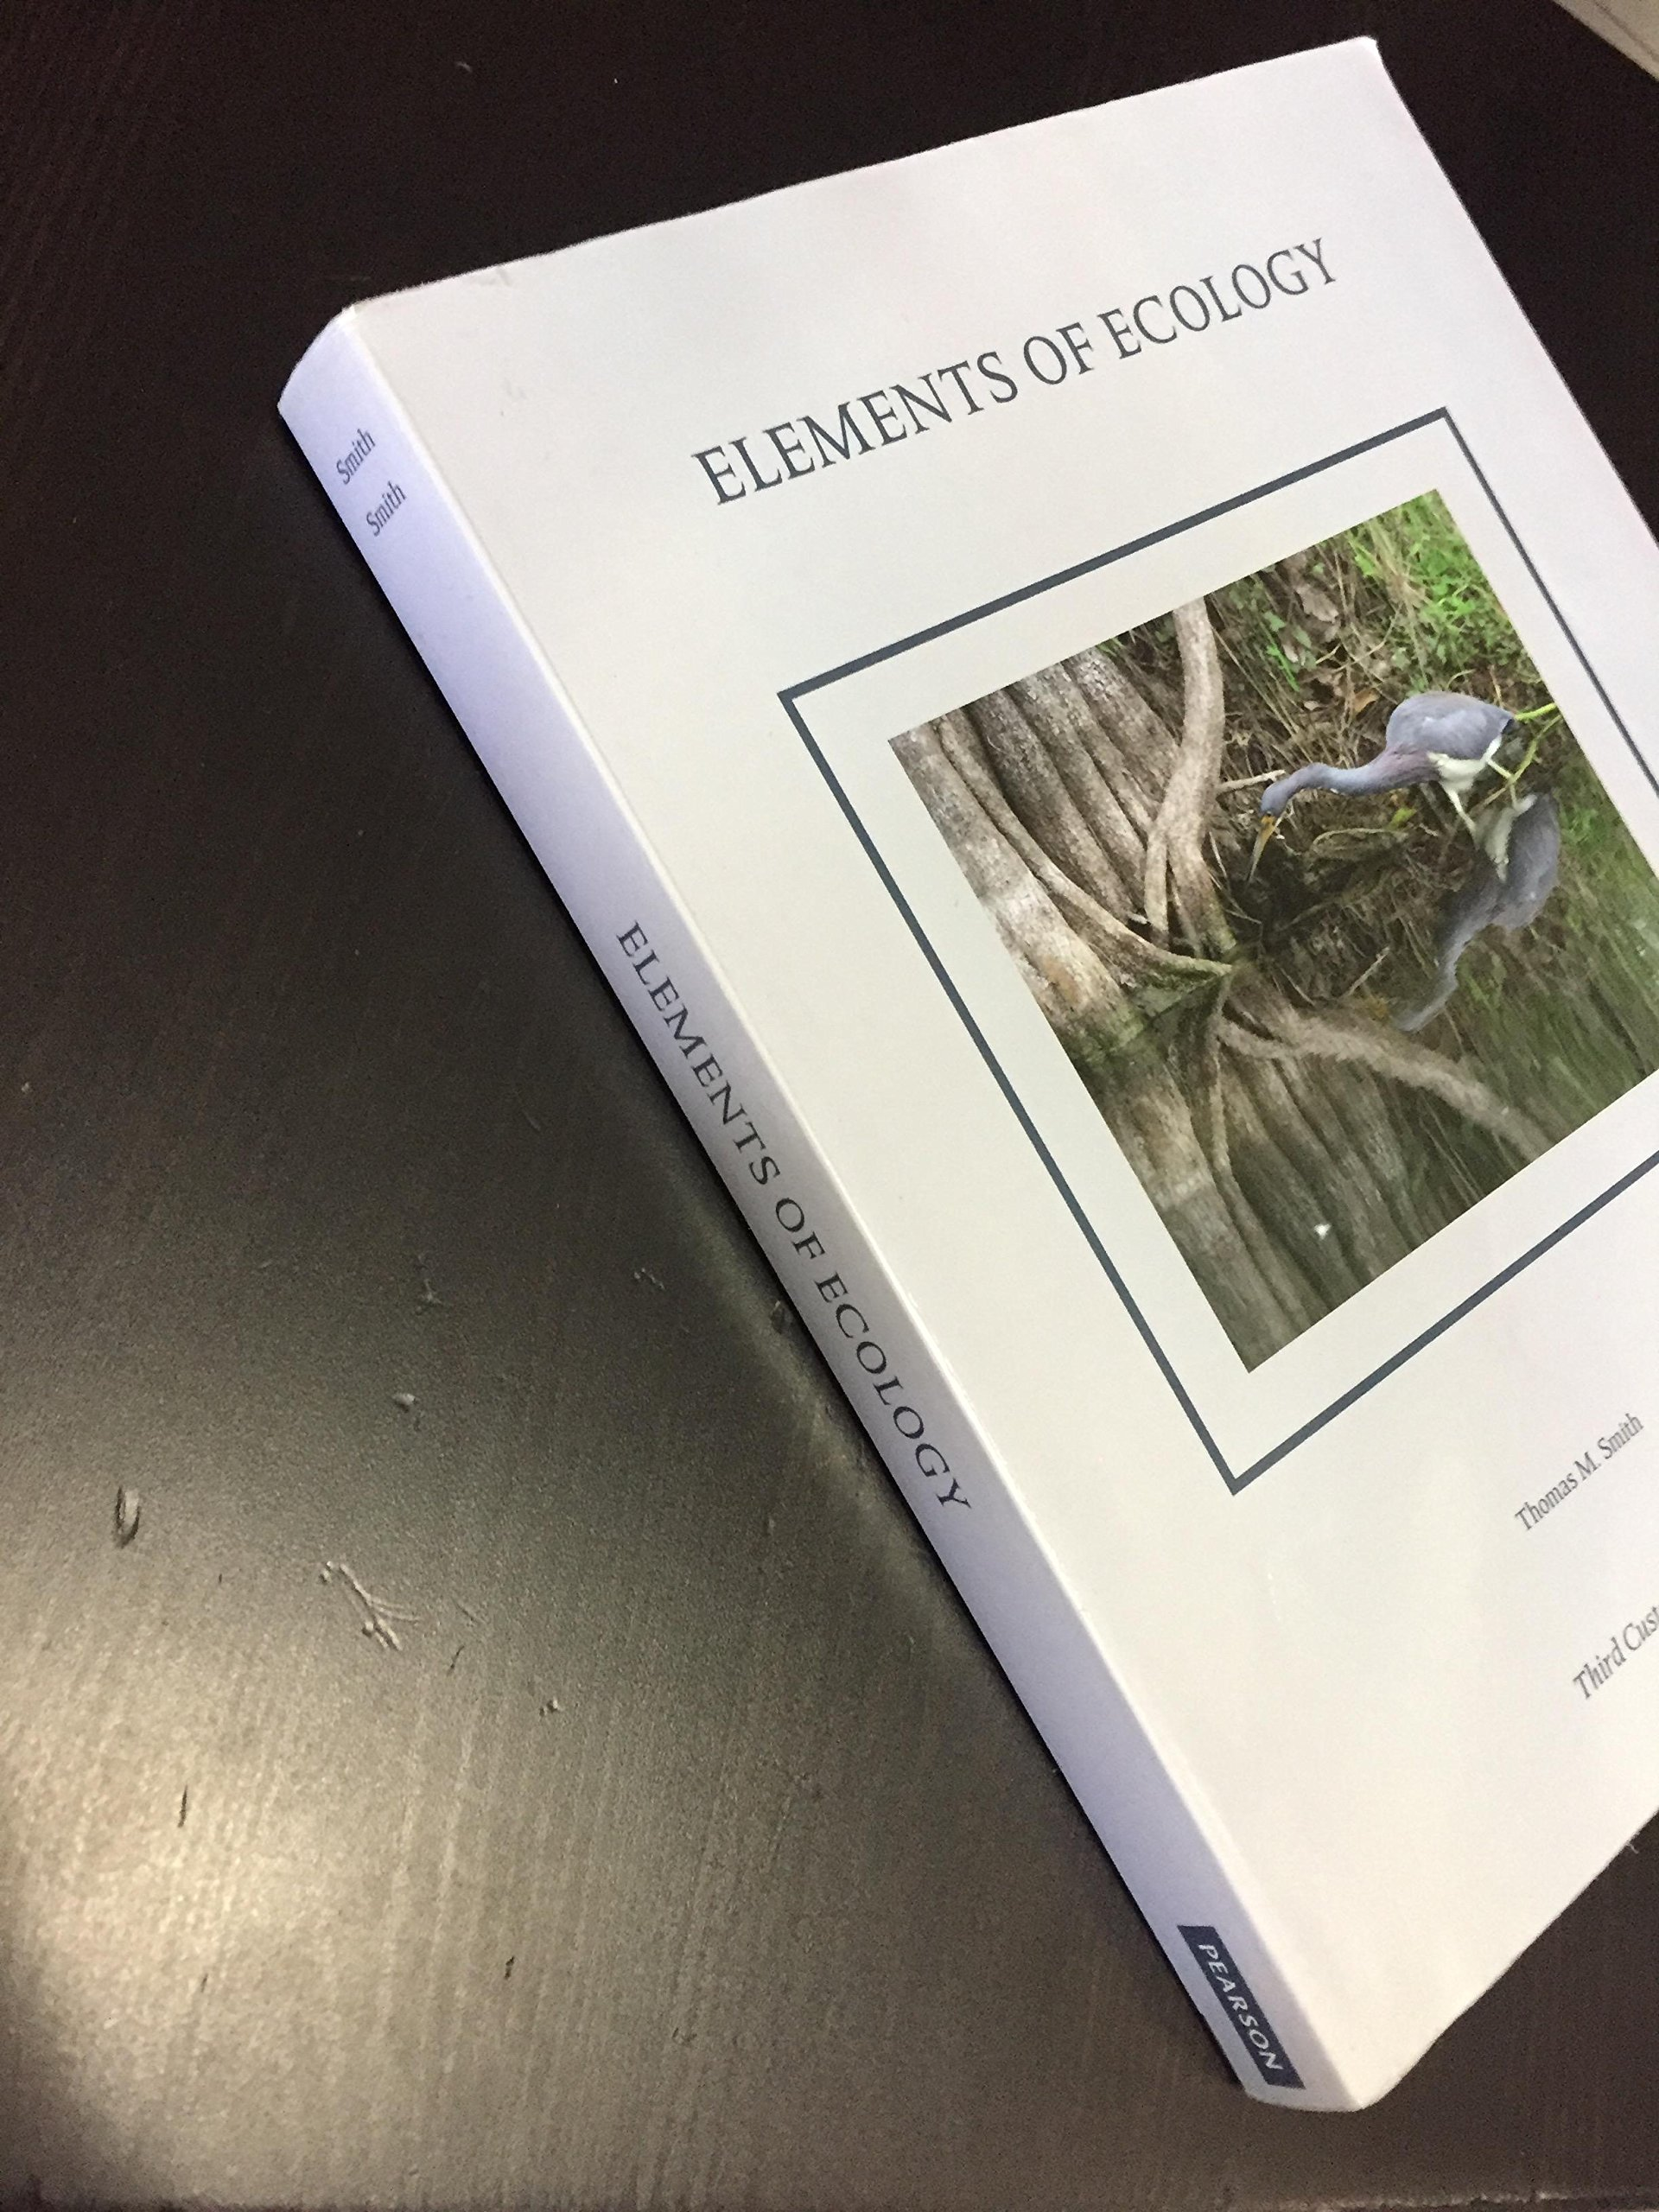 Elements of Ecology for Baruch College 3rd Edition with Lab Book: Thomas M.  Smith, Robert Leo Smith: 9781256780274: Amazon.com: Books